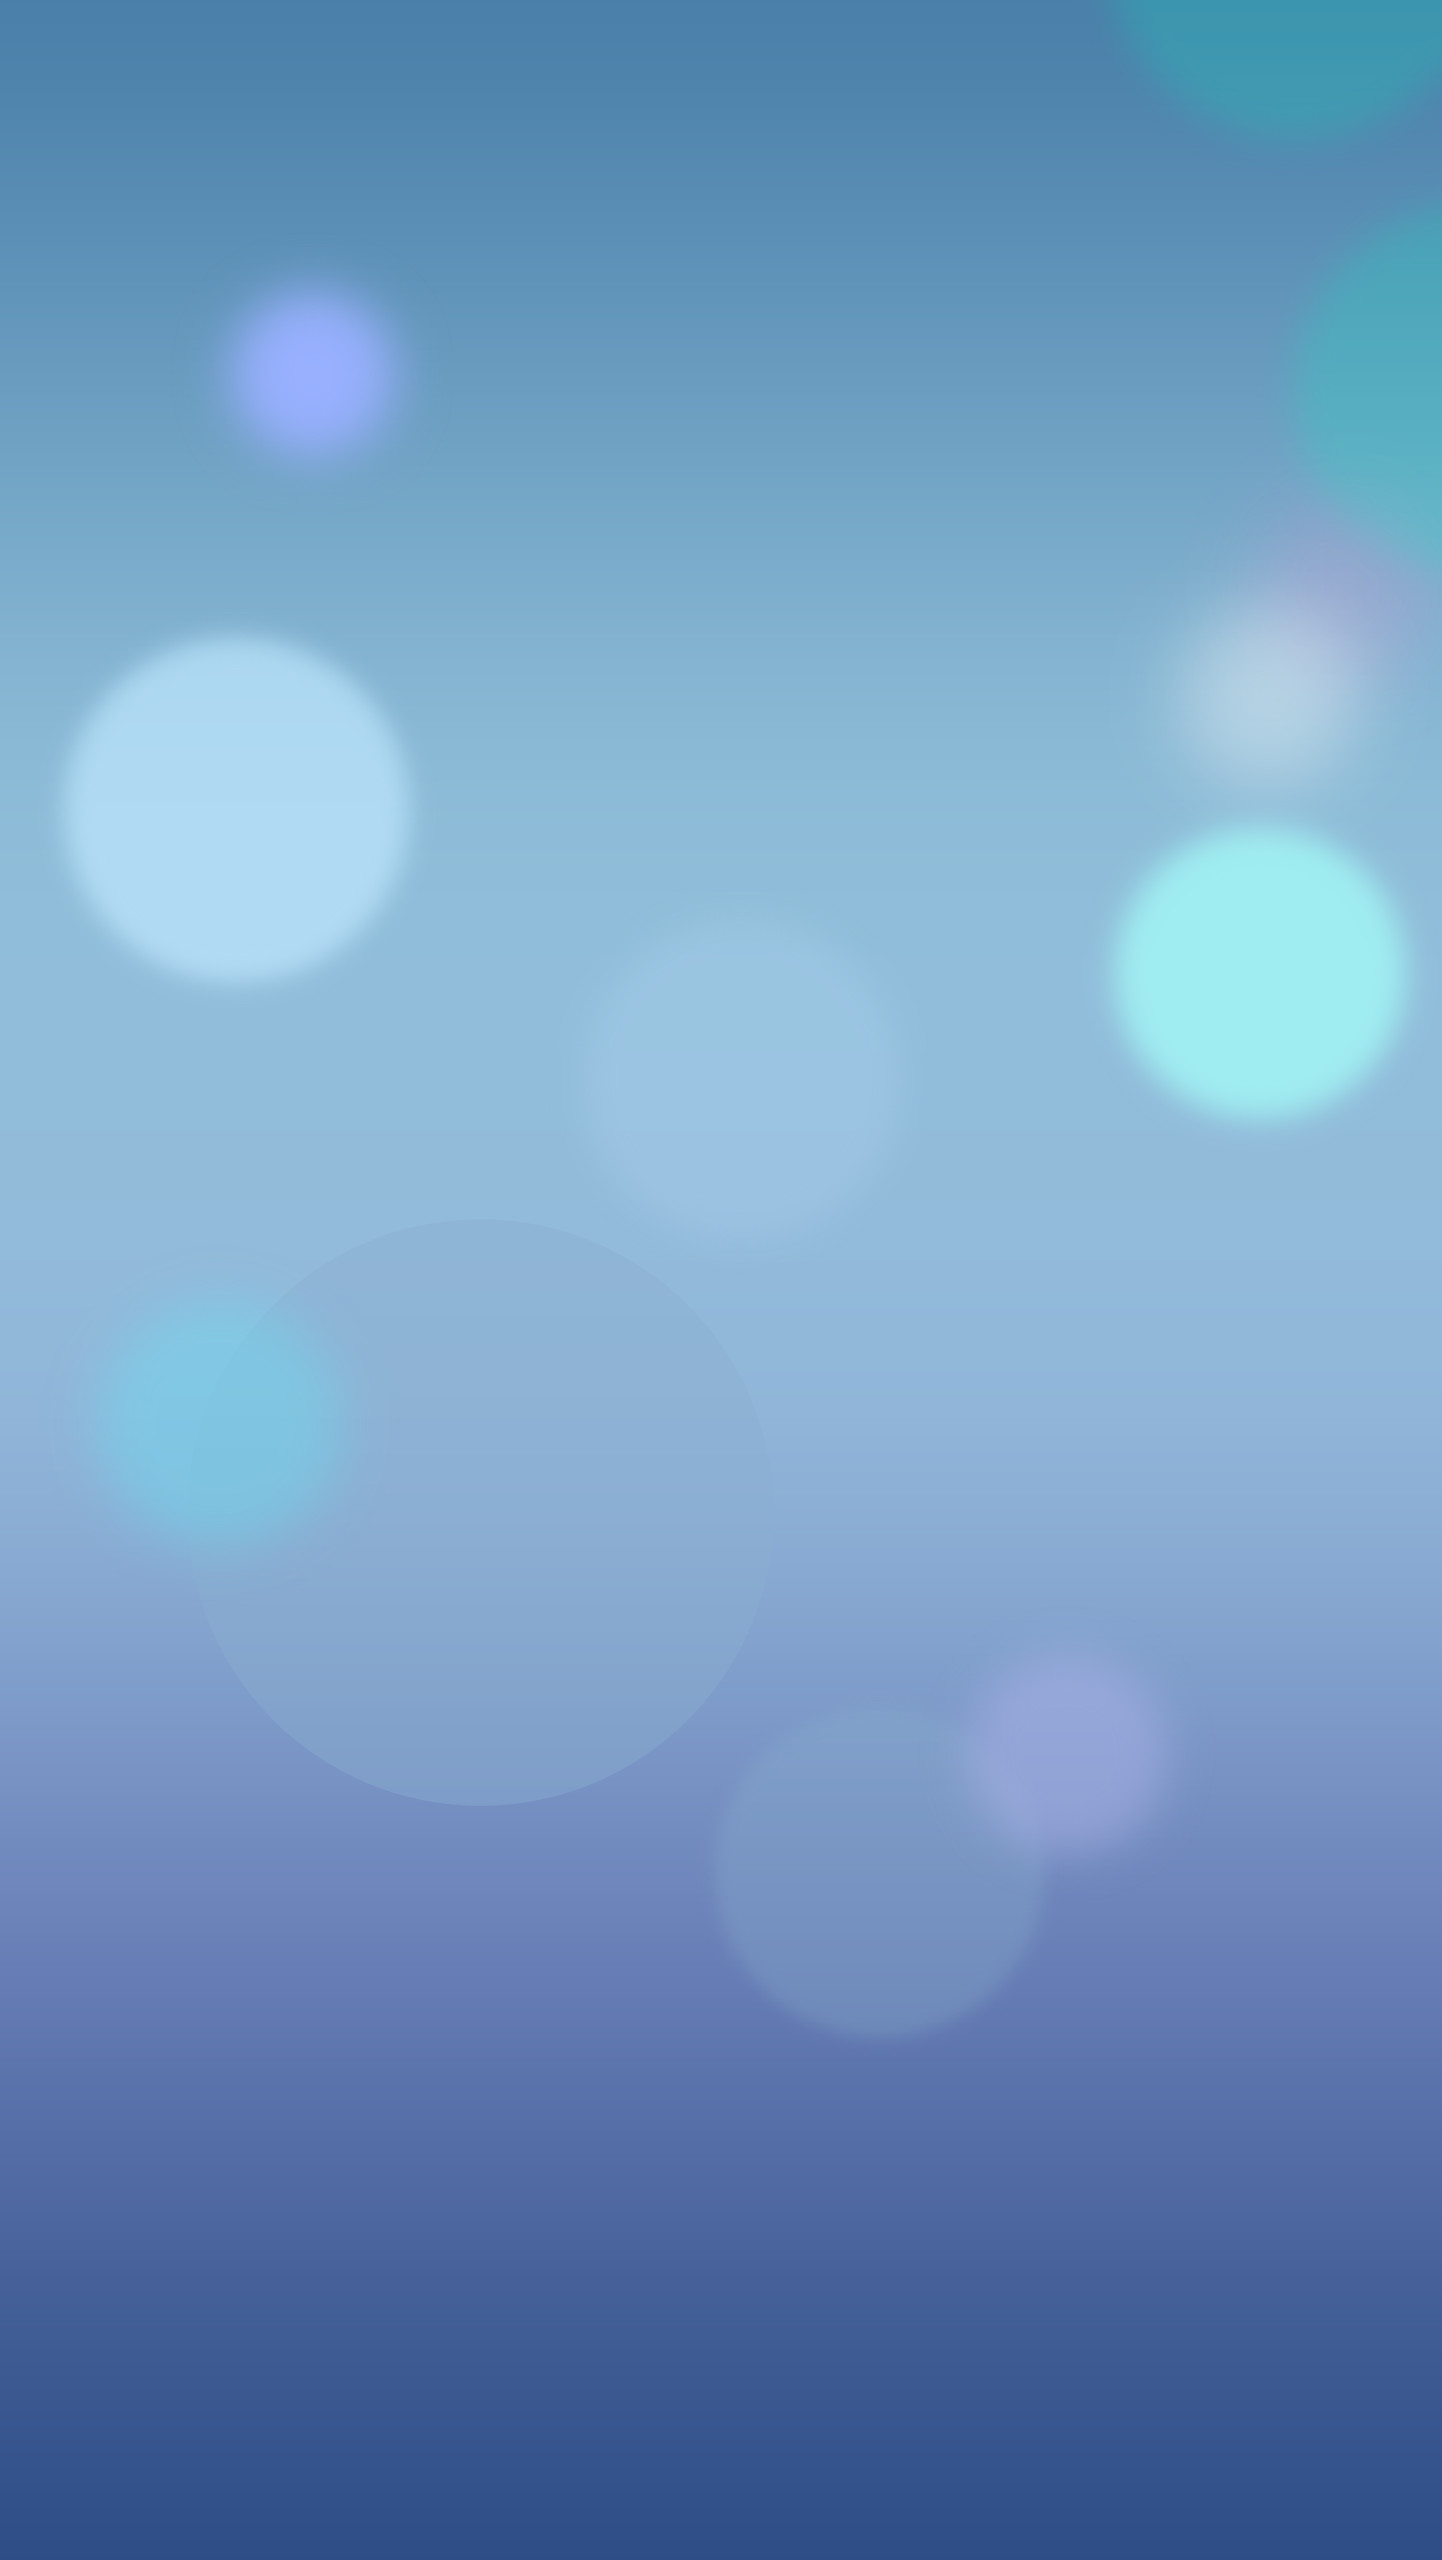 iphone 6 ios 8 colorful ios 6 wallpaper 22605 23221 hd wallpapers